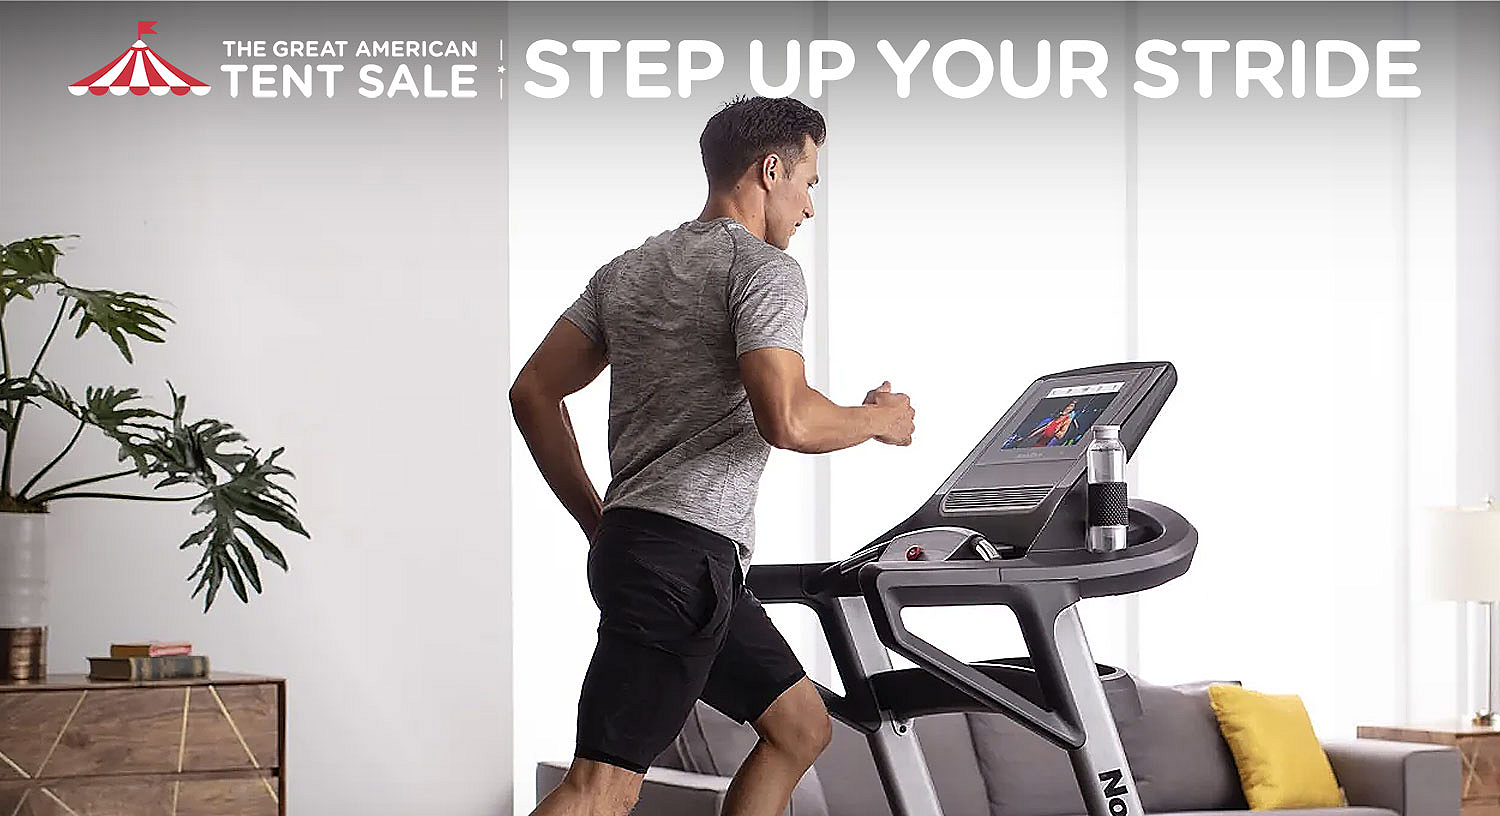 Step up your stride